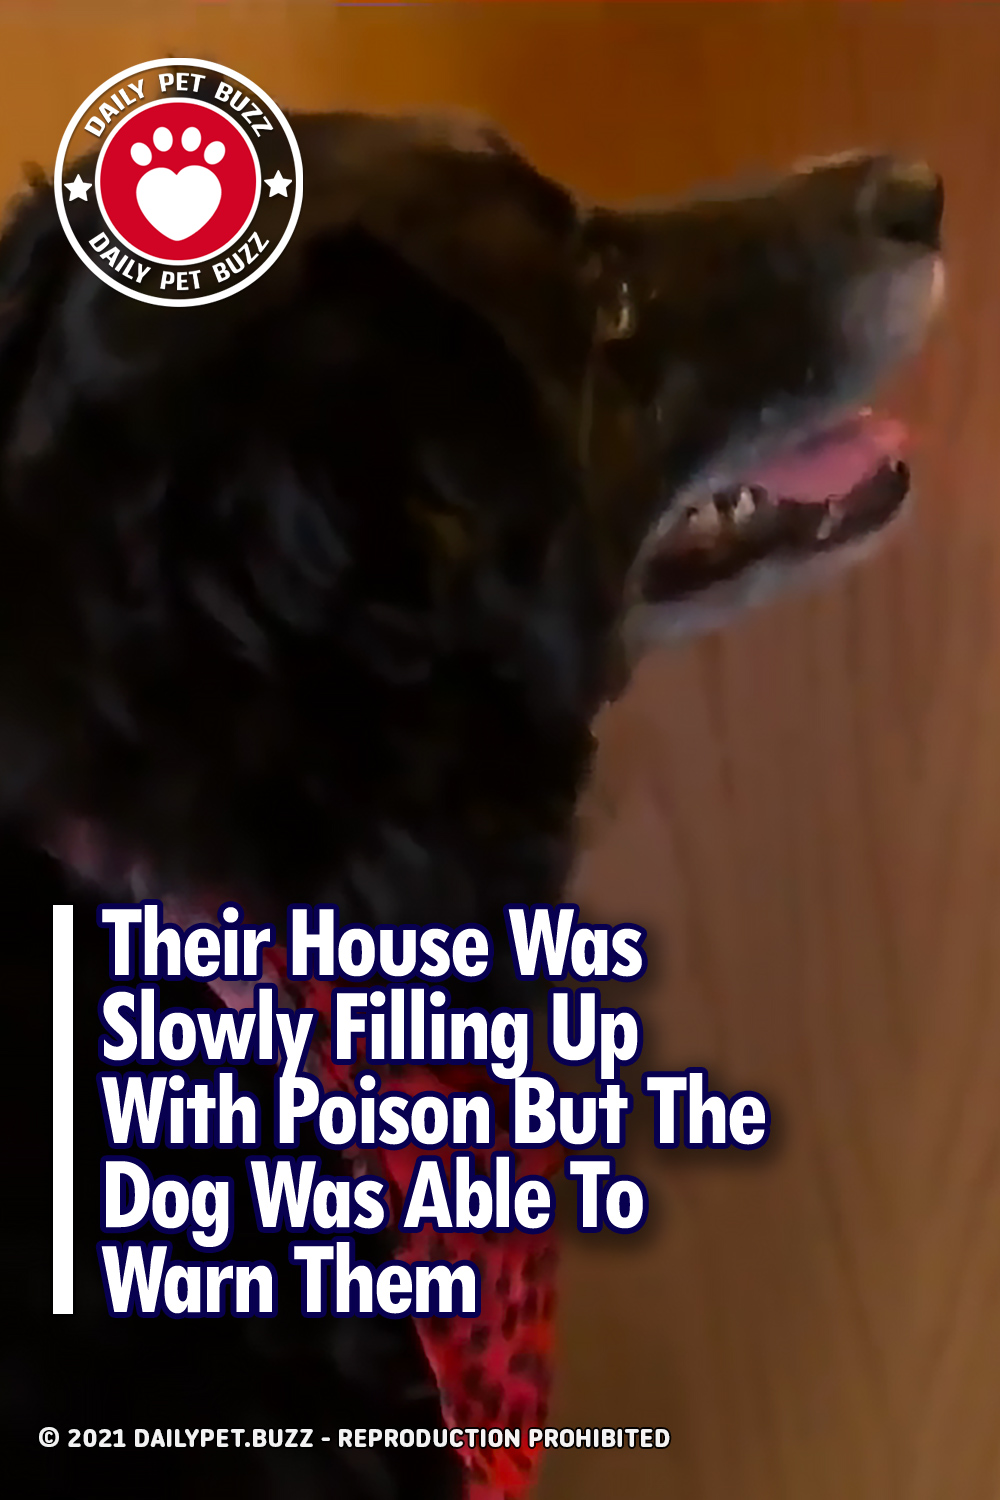 Their House Was Slowly Filling Up With Poison But The Dog Was Able To Warn Them